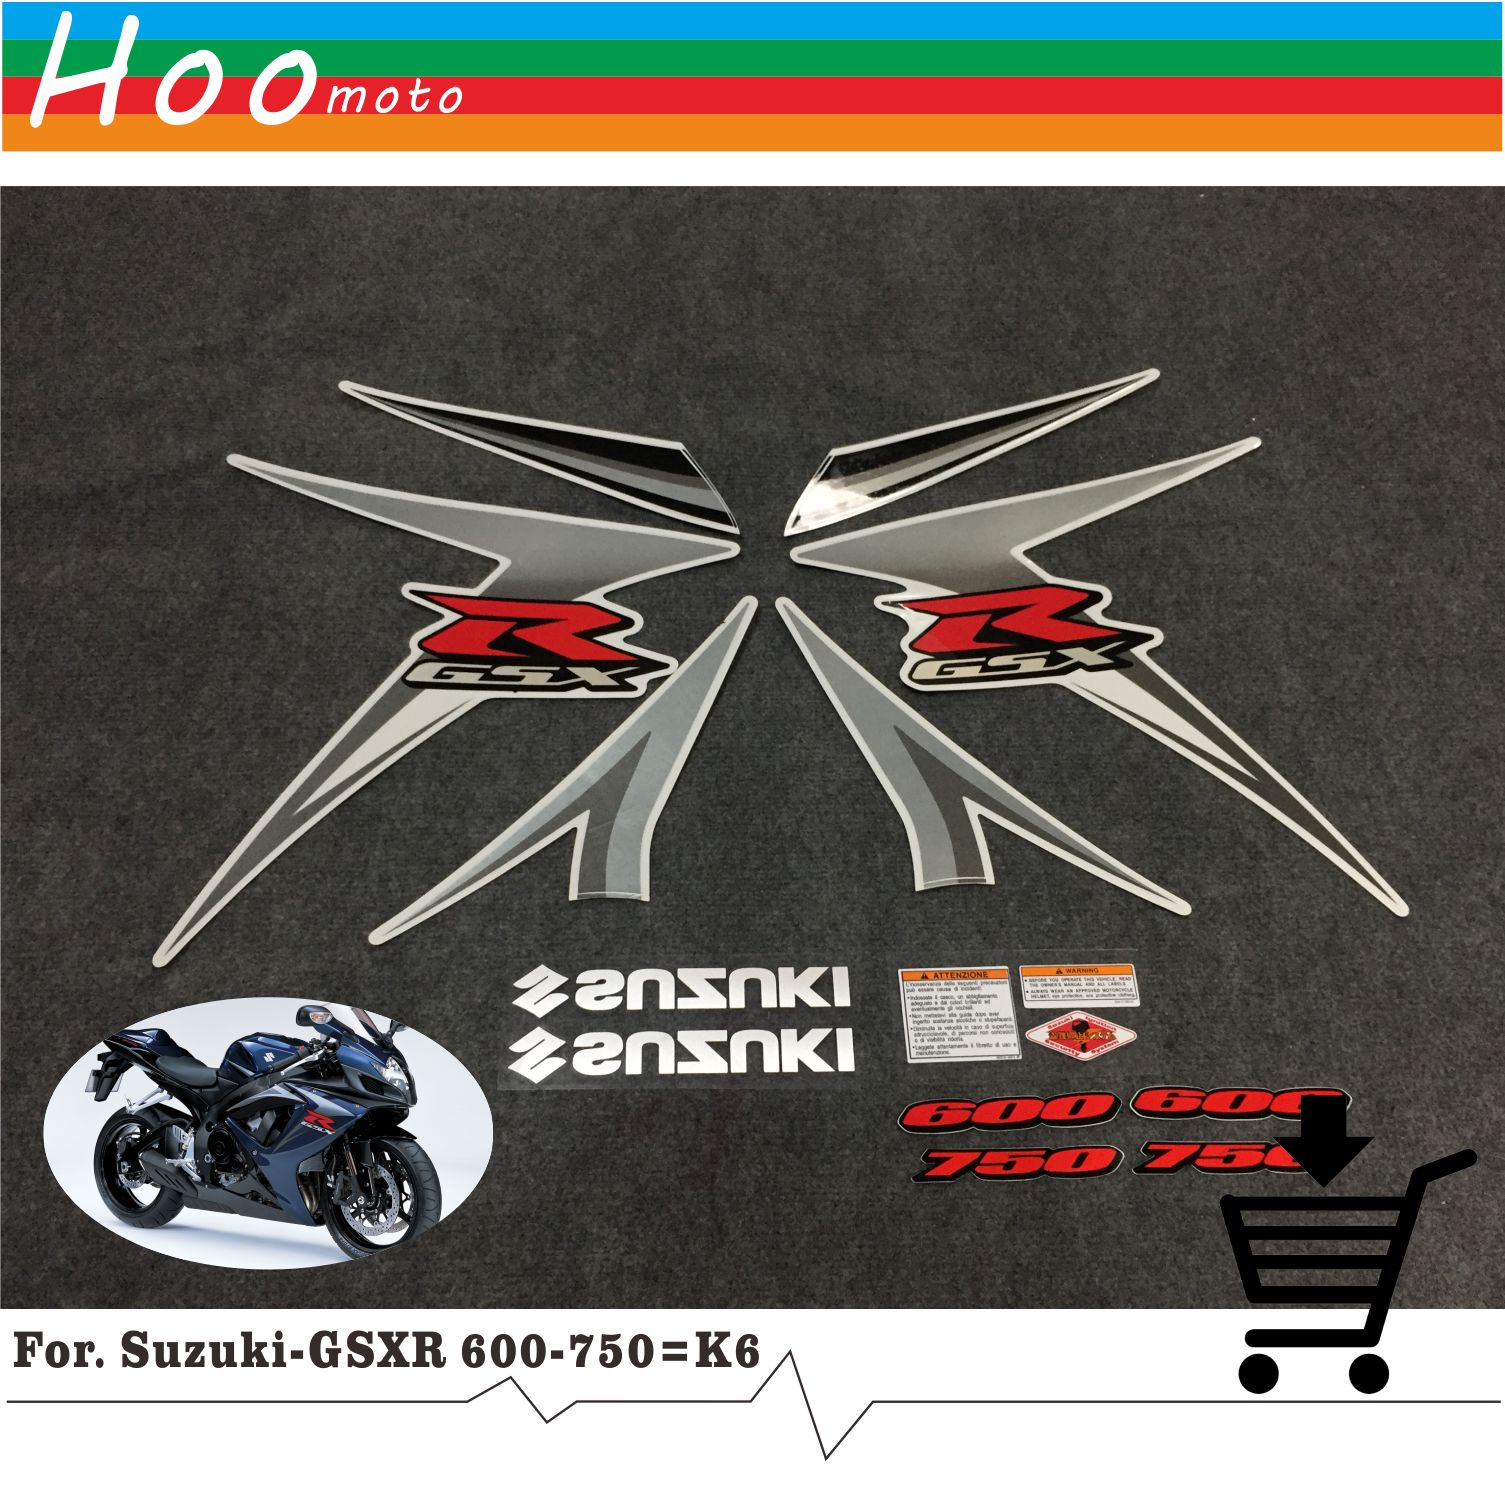 New for Suzuki GSXR GSX-R GSX R 600 K6 2007 MOTO High Quality Decals Sticker Motorcycle Car-styling Stickers More K6 K8 K11 K7 hot sale 1pc longhorn hilux 900mm graphic vinyl sticker for toyota hilux decals badges detailing sticker car styling accessories